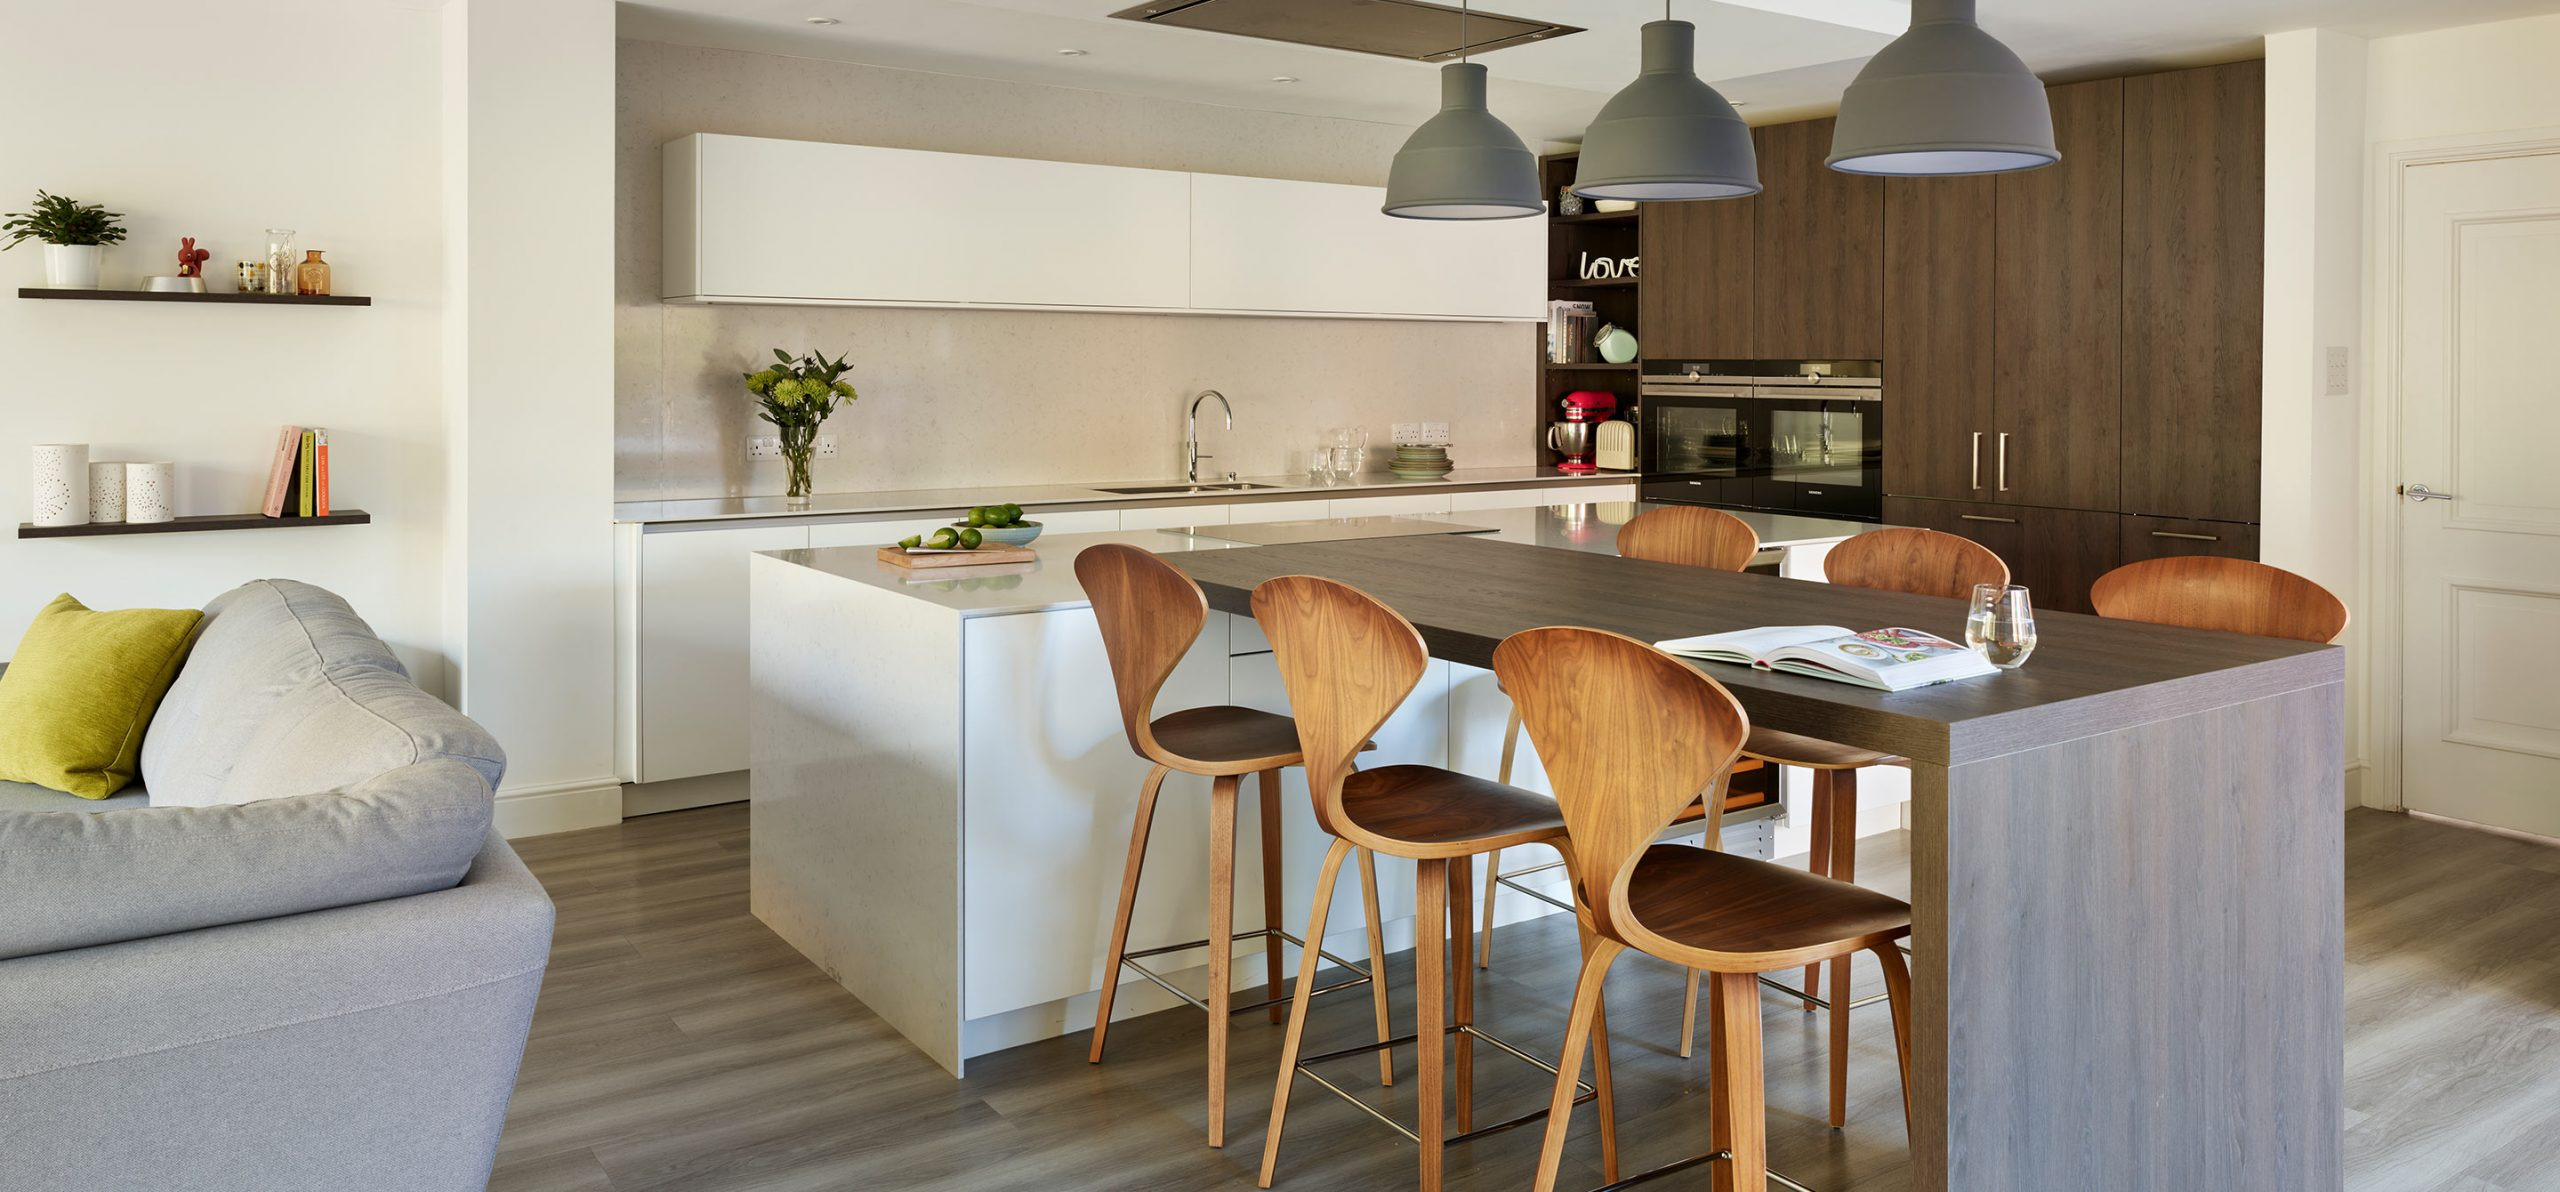 White porcelain island with down-stand's and dark brown timber high tabletop for casual seating